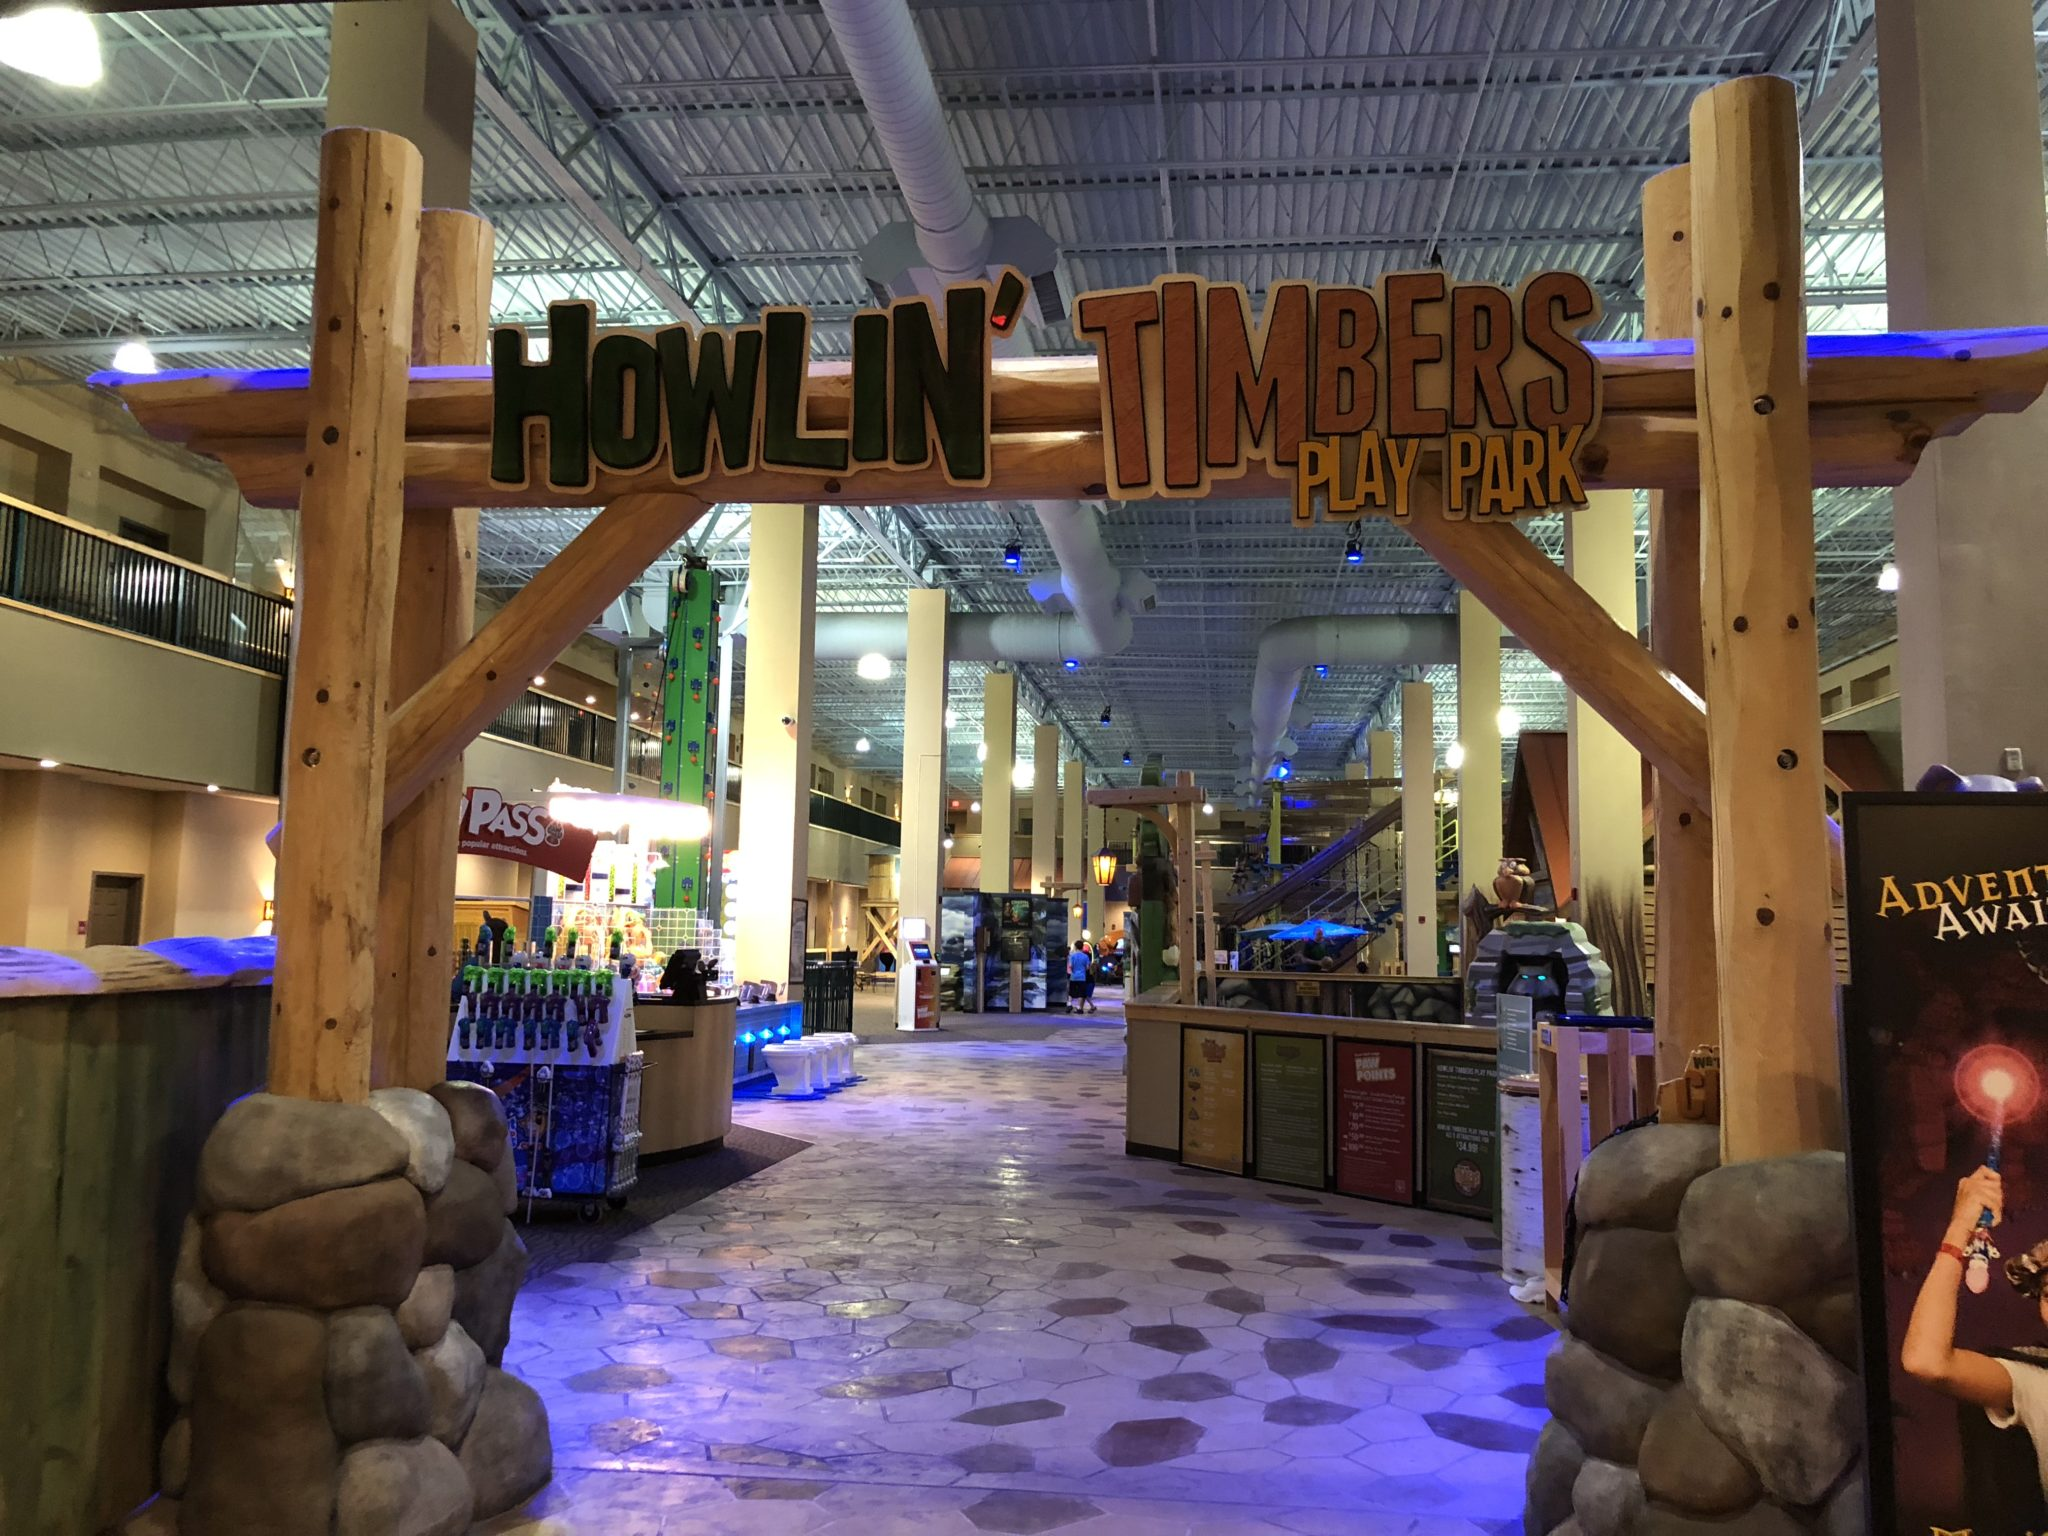 Great Wolf Lodge is more than just a water park. Sure, your family is in for an incredible water park experience when you visit, but there is much, much more including tons of family friendly attractions, shopping, entertainment and various dining options - all under one roof!